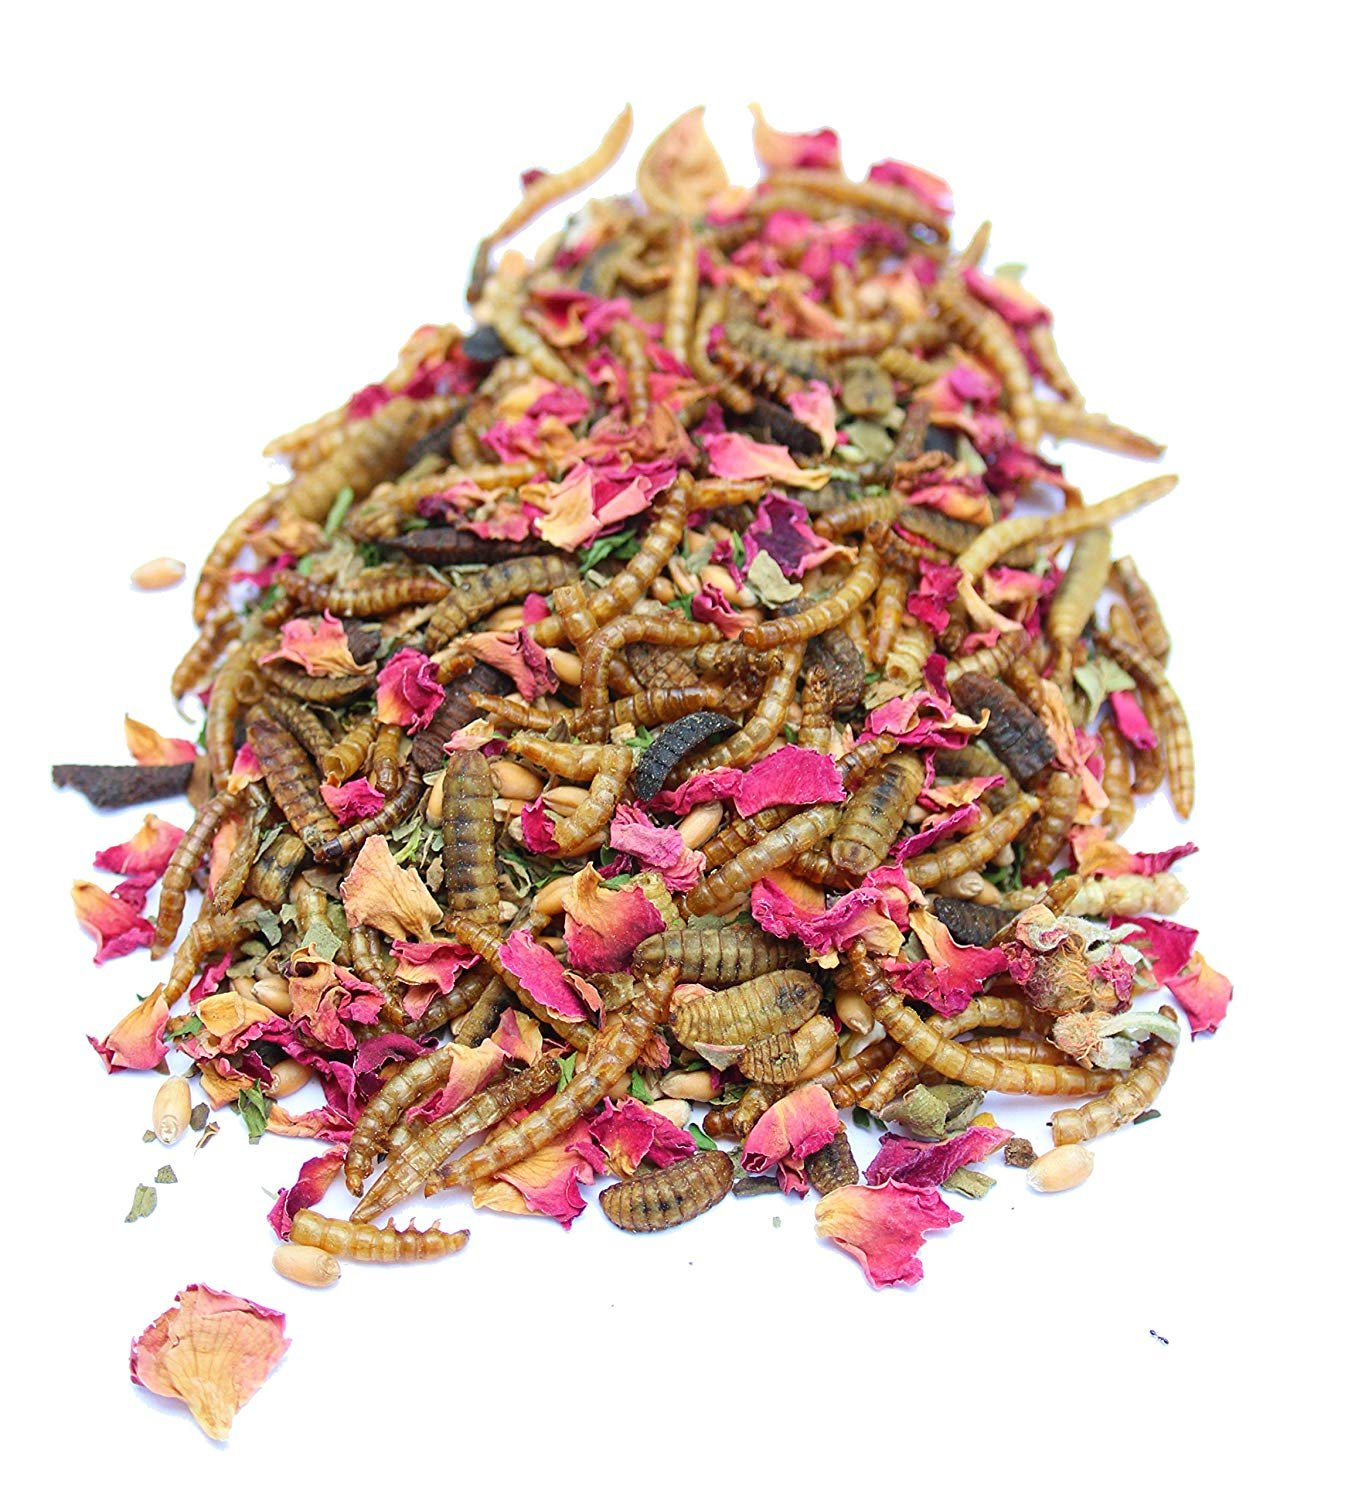 All Natural Mealworm and Herb Treat for Backyard Chickens, Non-GMO, USA Raised, Healthy Backyard Chicken Feed and Supplies, BEE A Happy Hen 4 Pounds (4 pounds (64 oz)